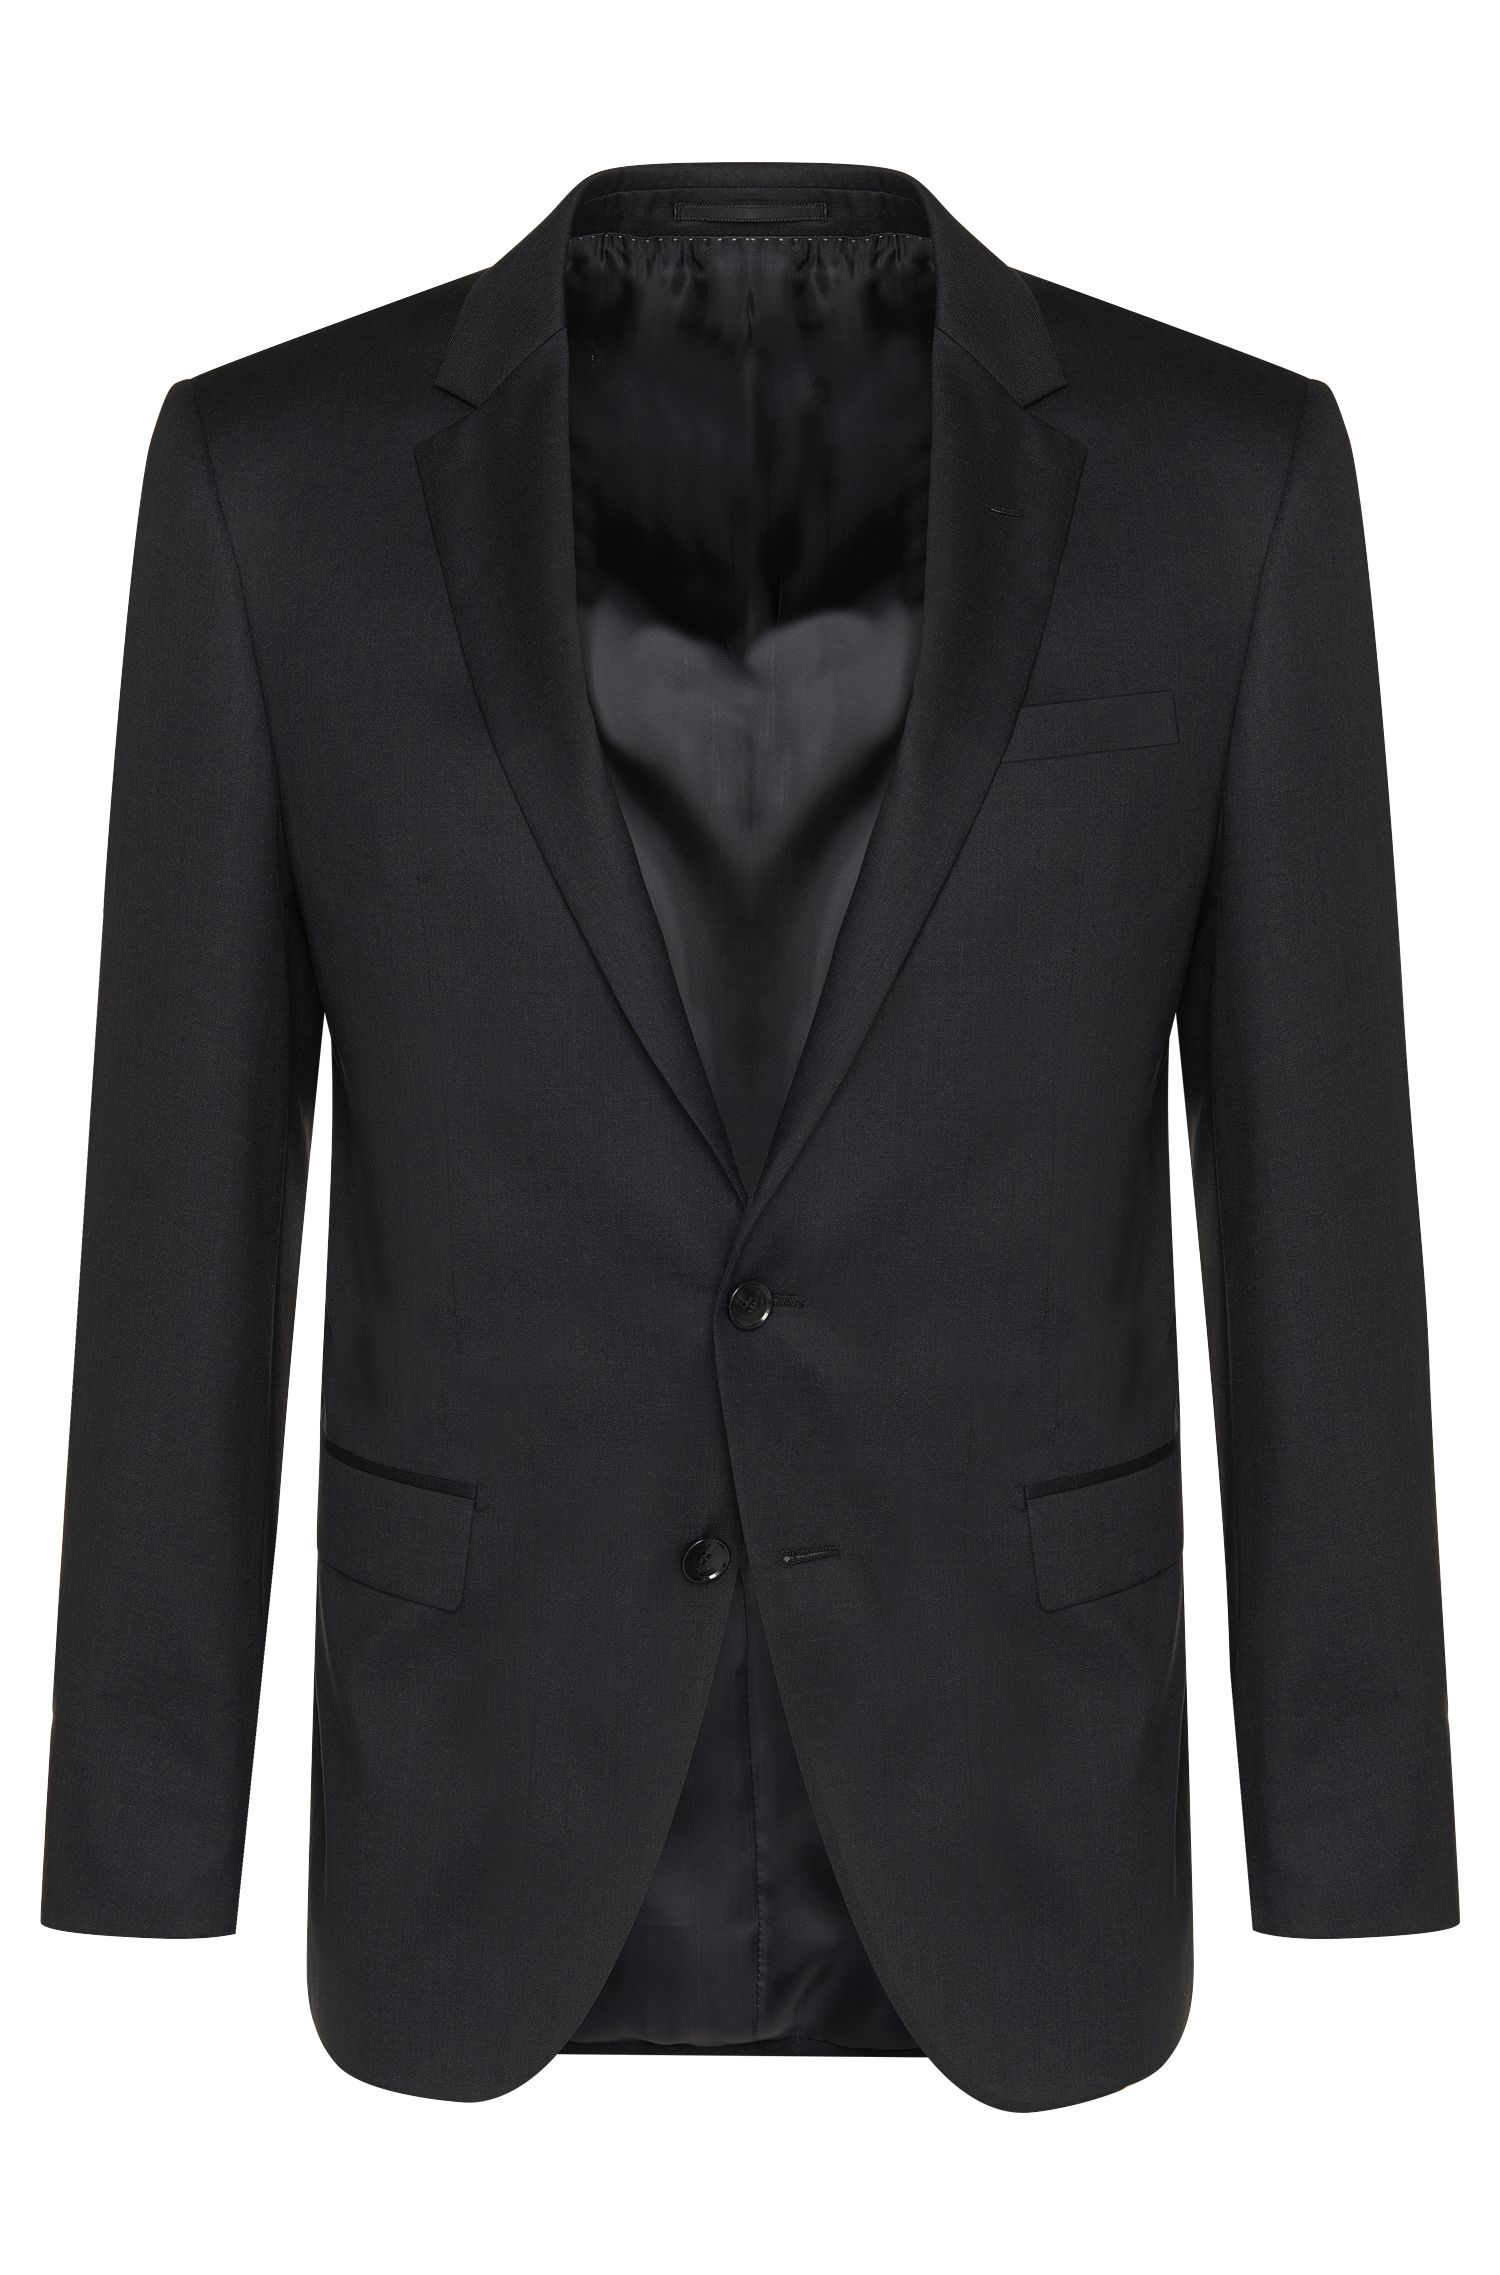 Veste de costume Slim Fit Tailored en pure laine vierge : « T-Harvers2 »